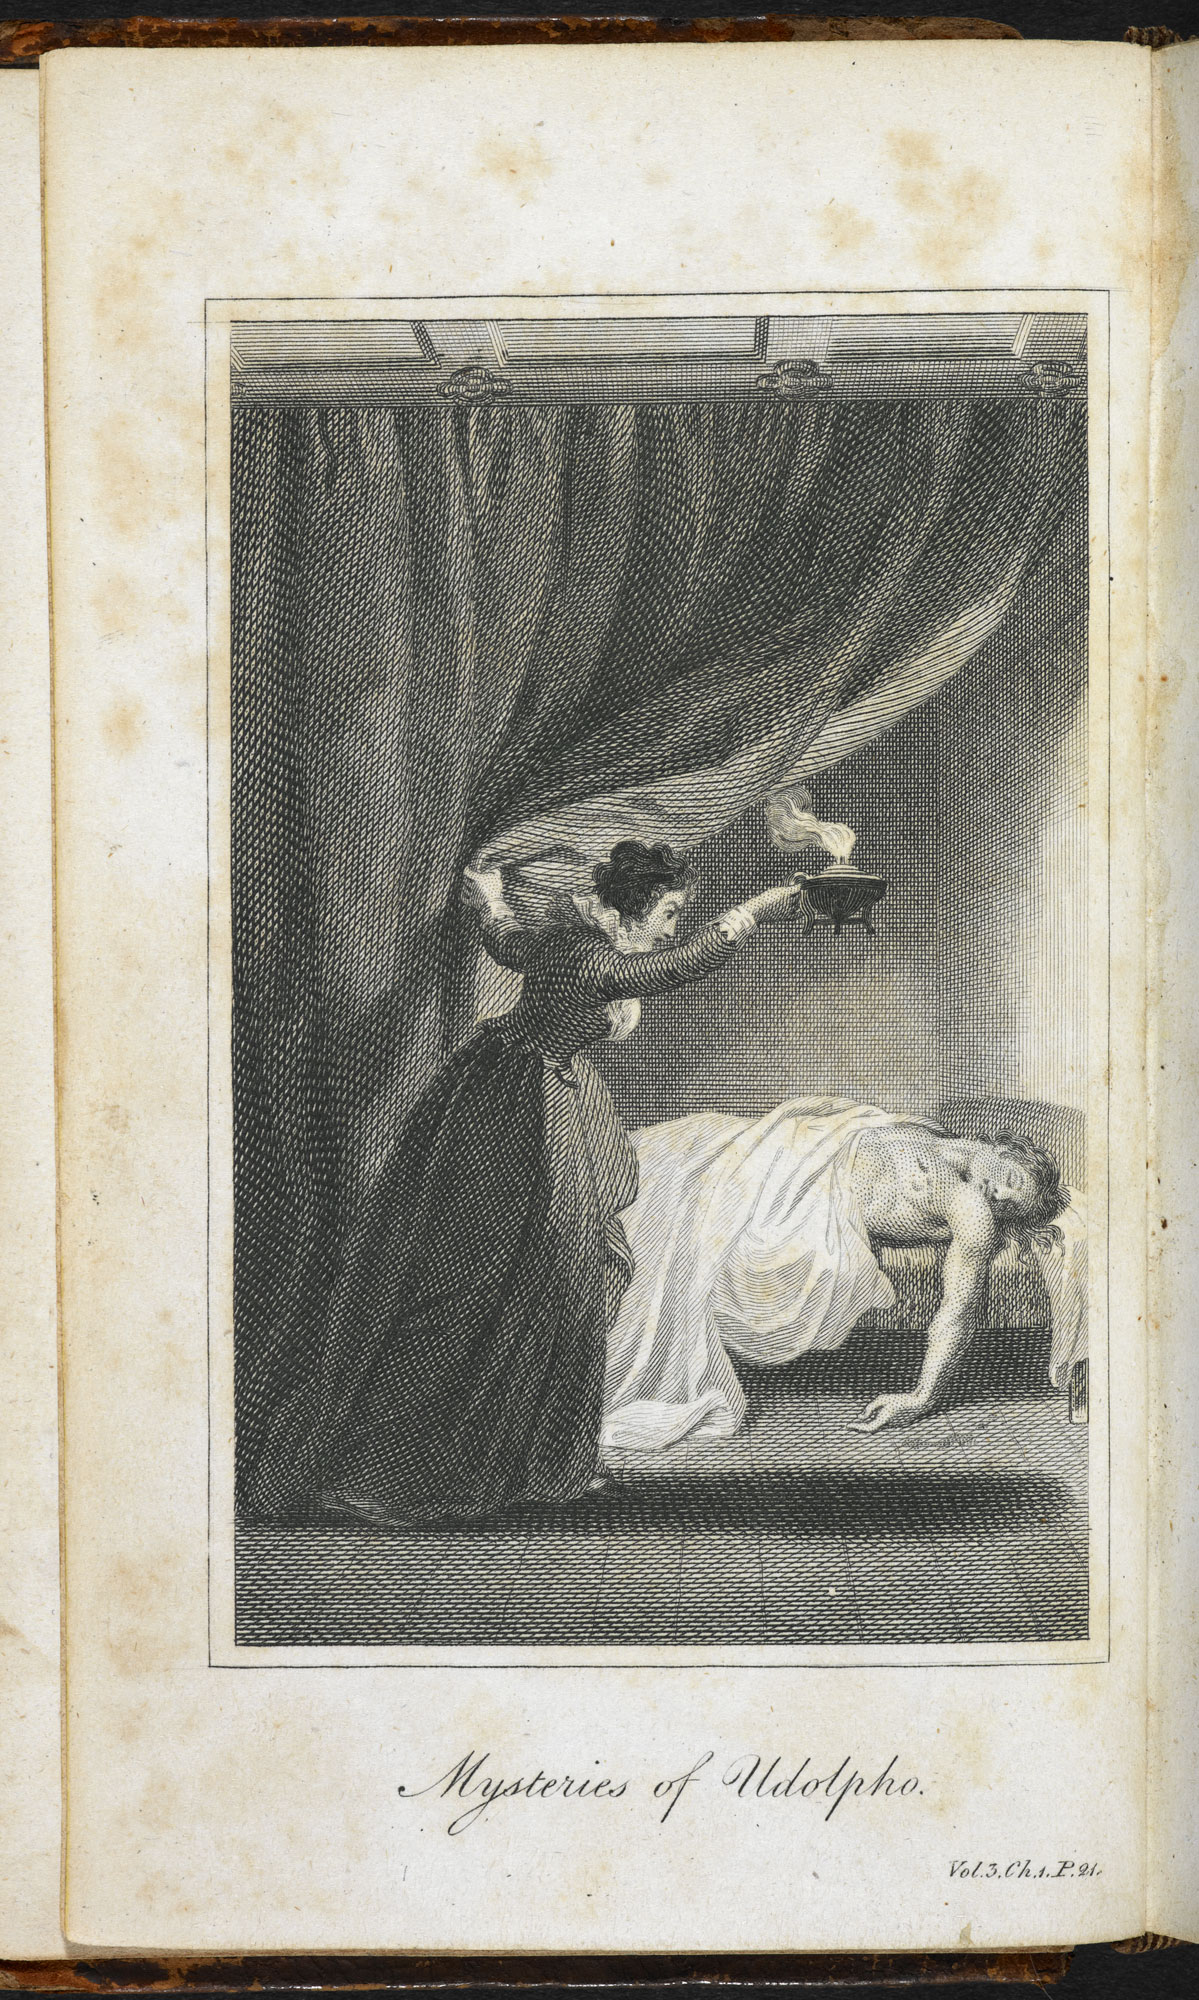 The Mysteries of Udolpho [page: vol. III frontispiece]